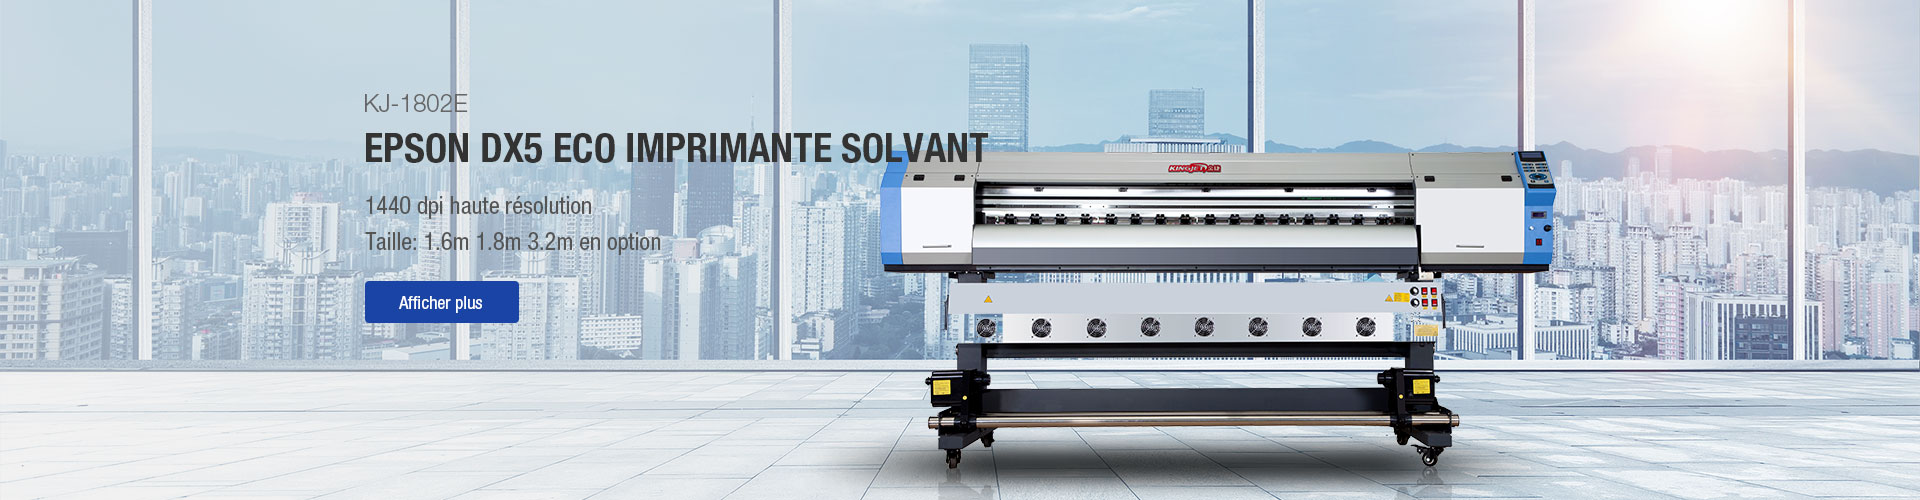 KINGJET DX5 Série Eco Solvent Printer KJ-1802E